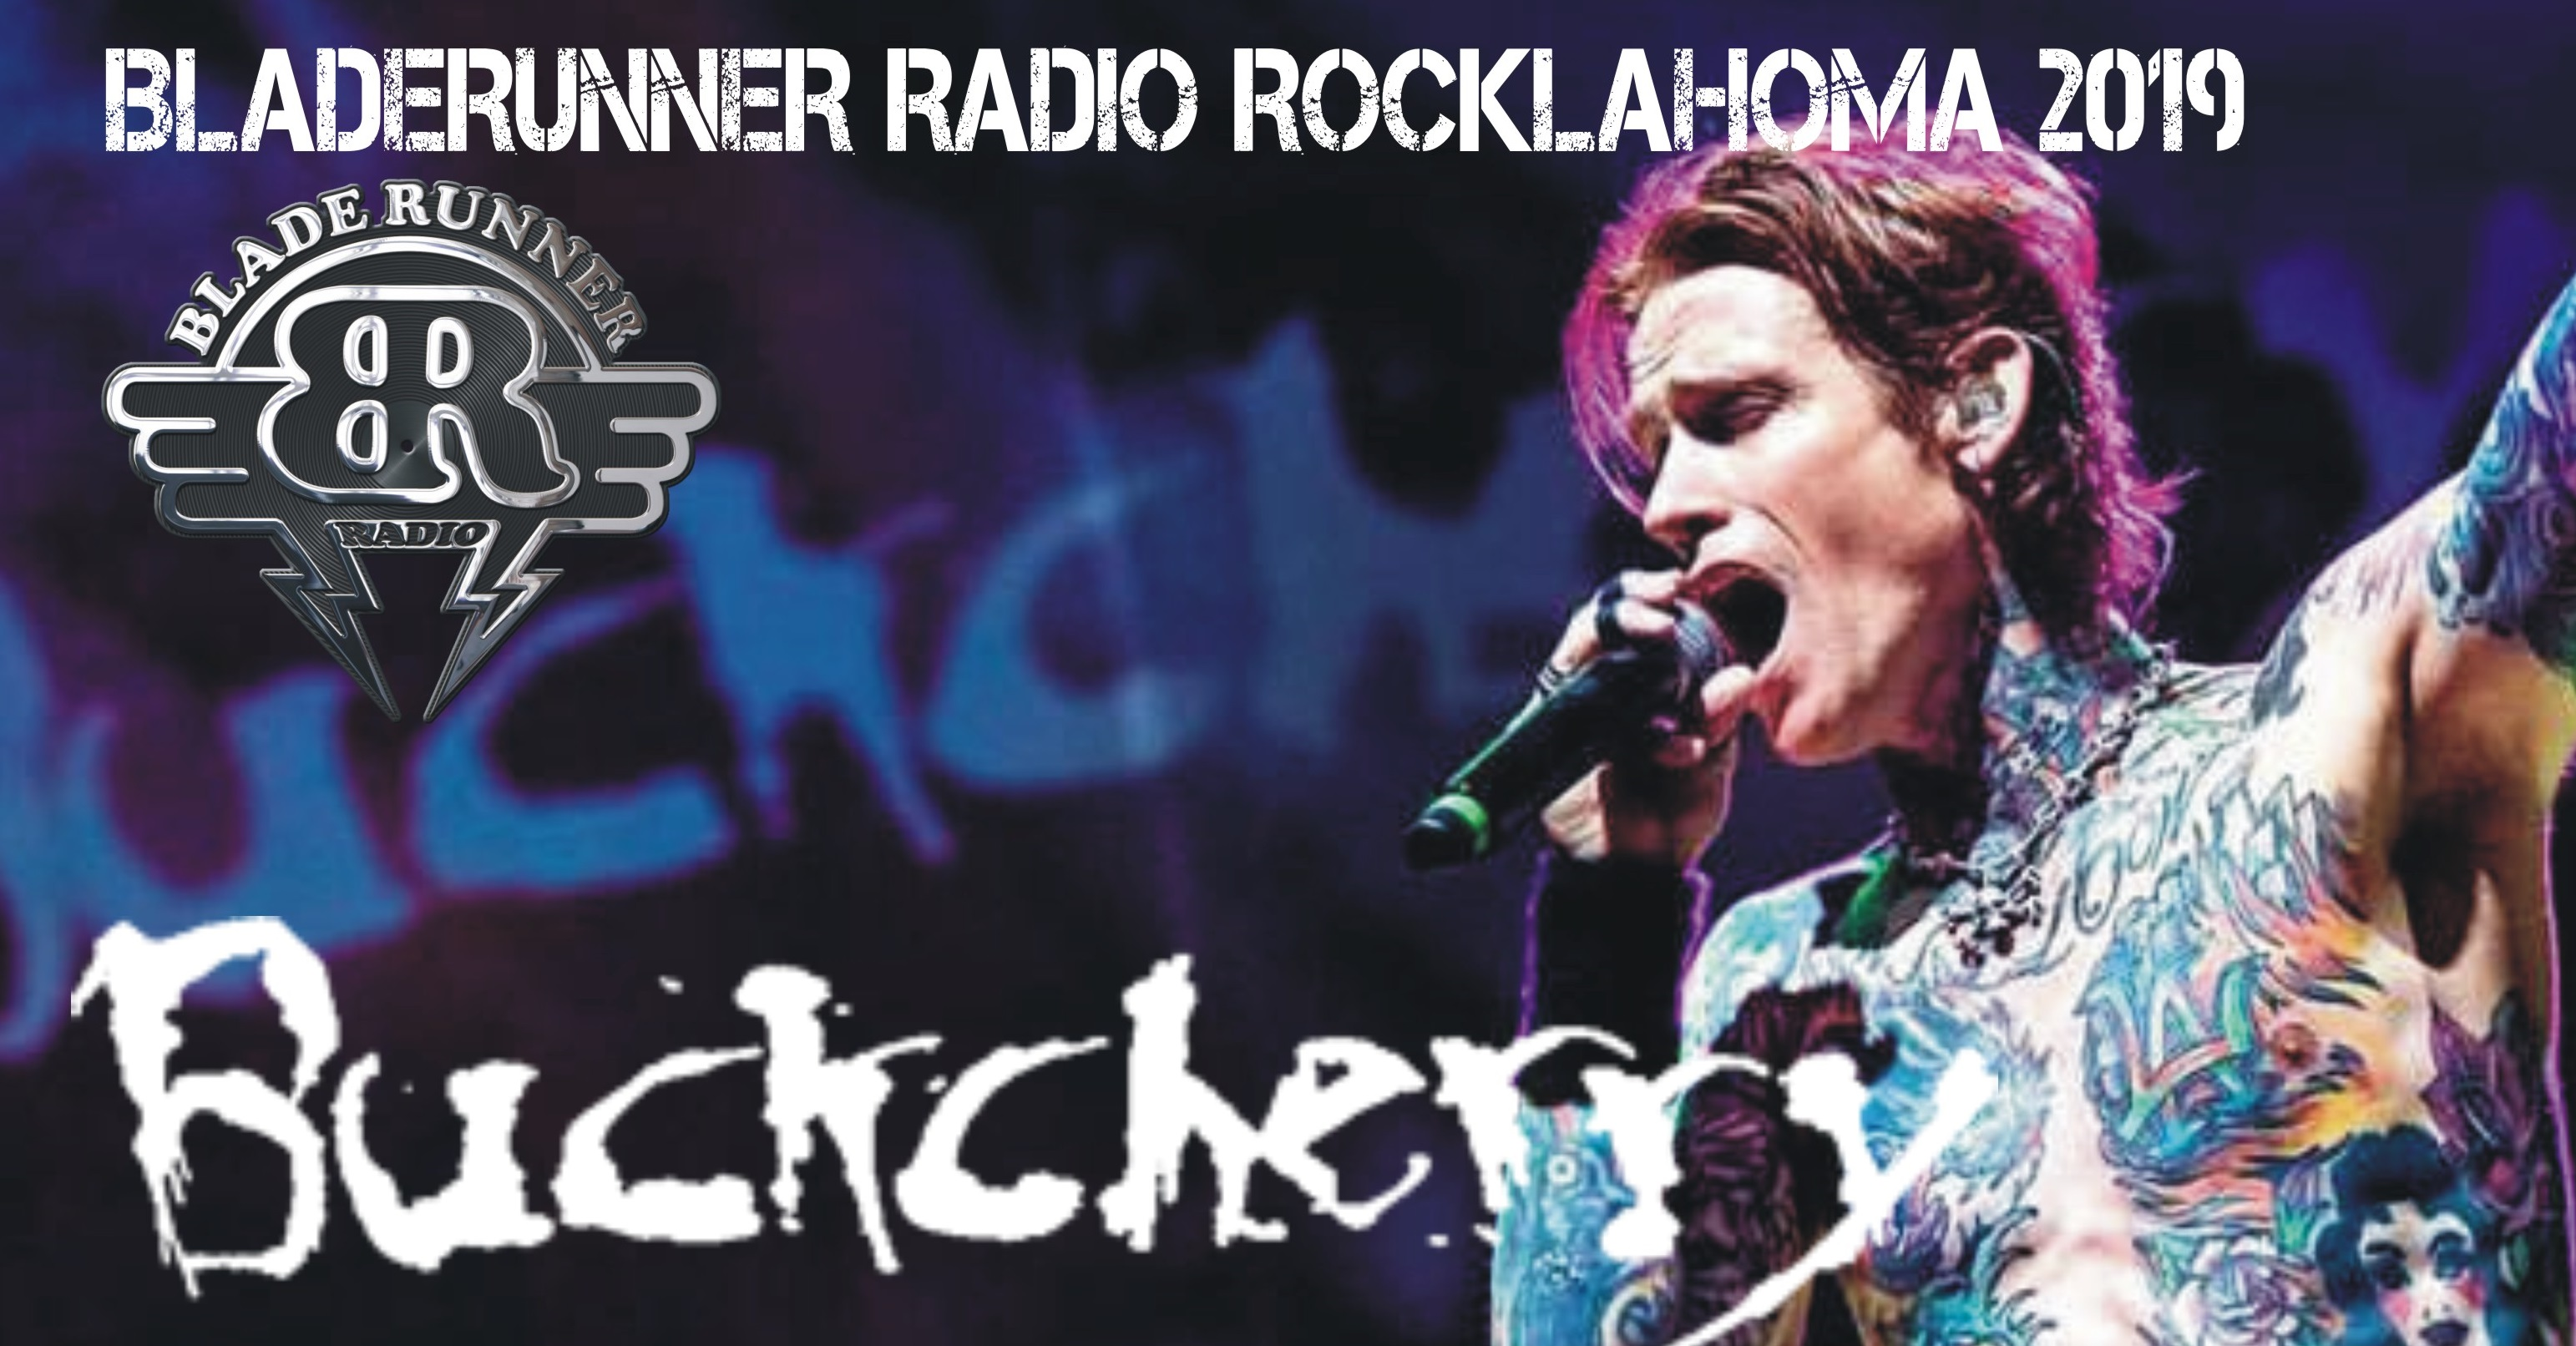 buckcherry crazy bitch josh todd bladerunner radio the bladerunner eddie trunk KATT